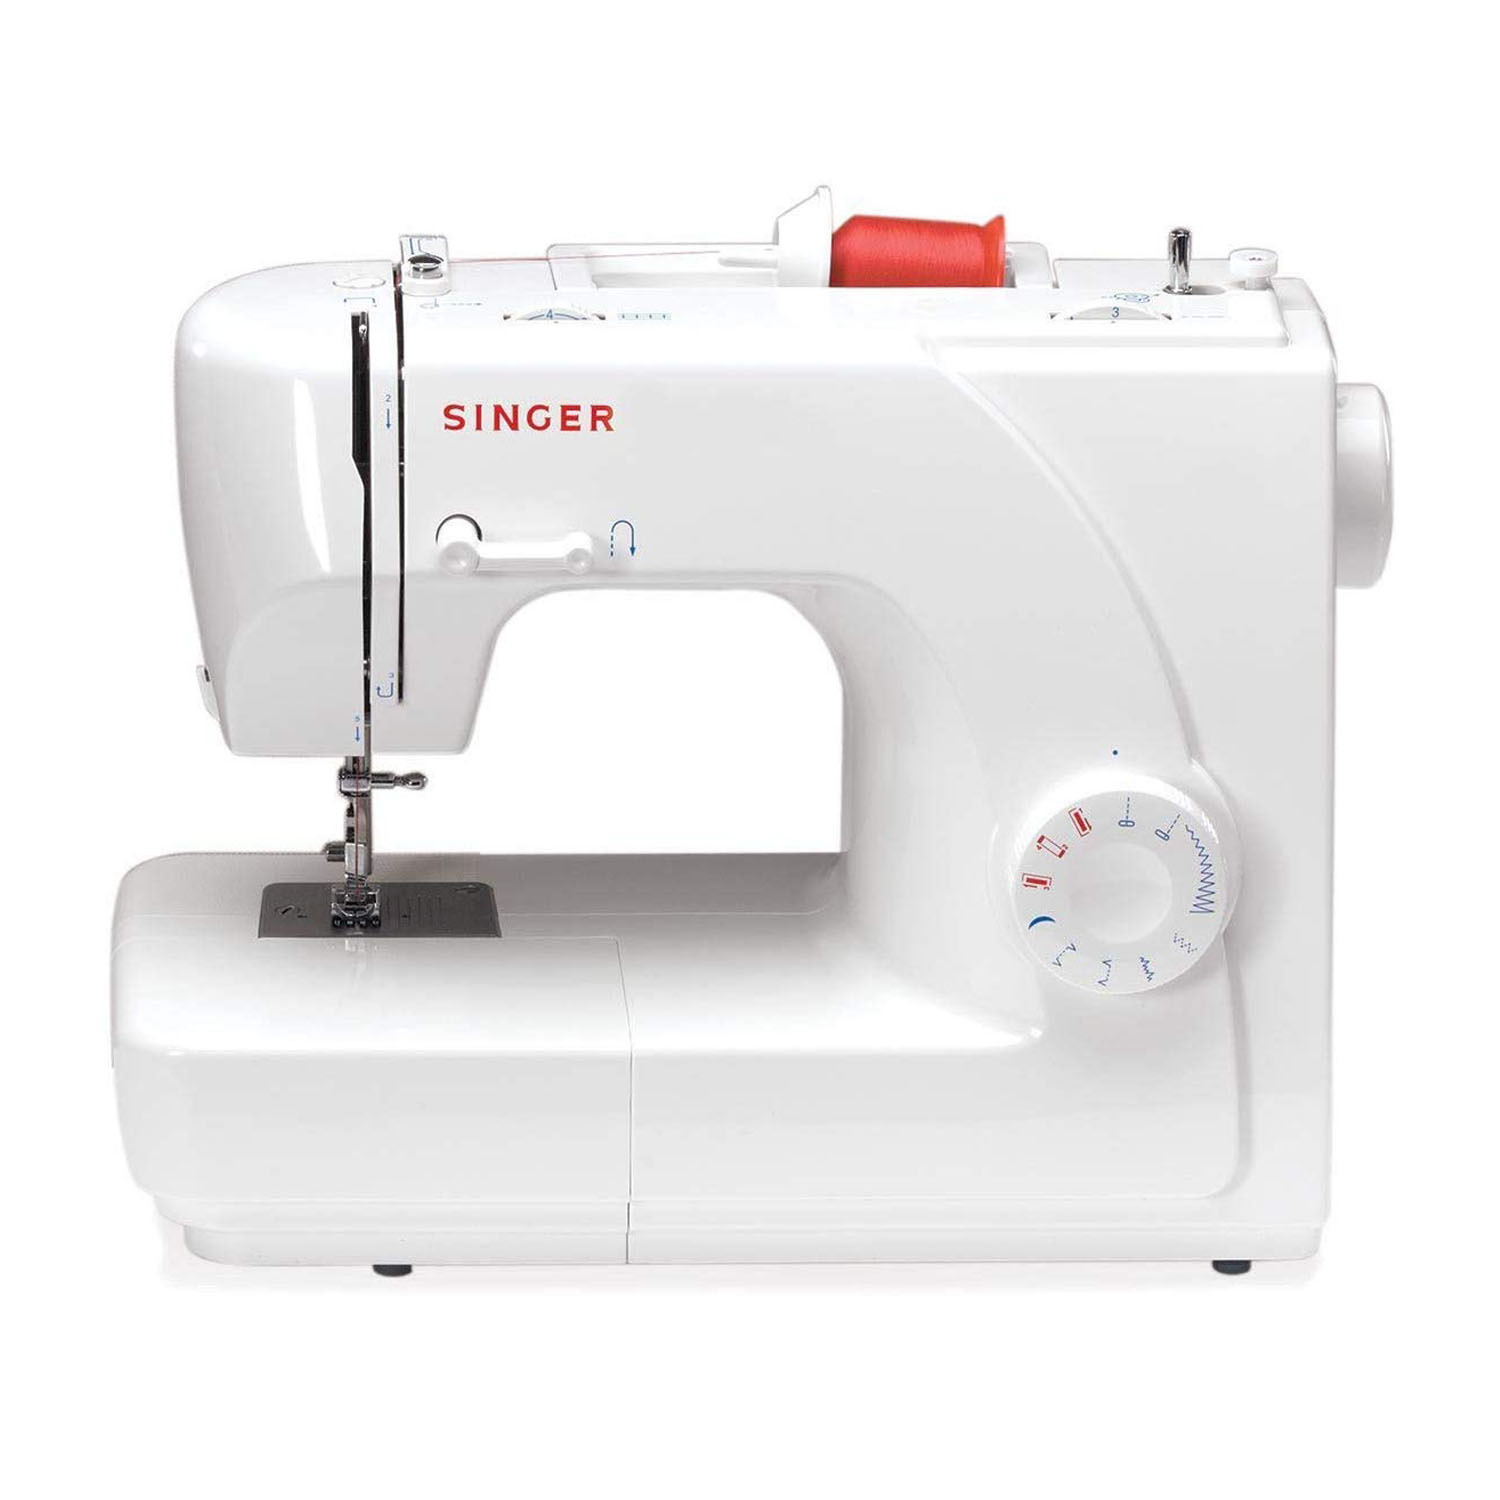 Singer 1507WC sewing machine